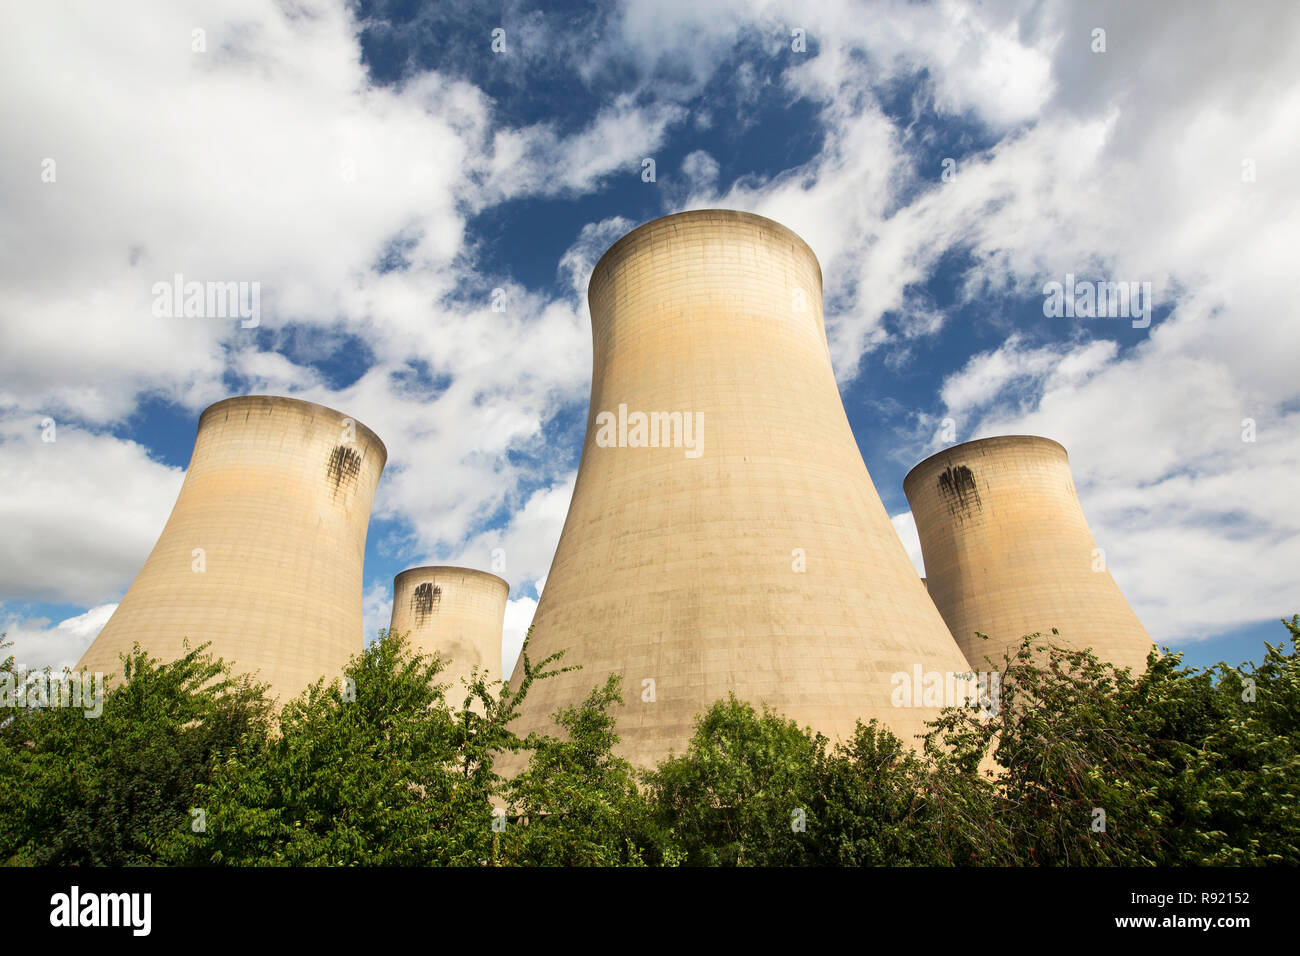 Drax power station in Yorkshire, UK, is the largest emitter of C02 in Europe. They are currently converting the power station to burn a percentage of biofuel as well as coal. Most of the wood is sourced from the US, with much of it coming from virgin forest, not exactly an environmentally friendly move. Stock Photo